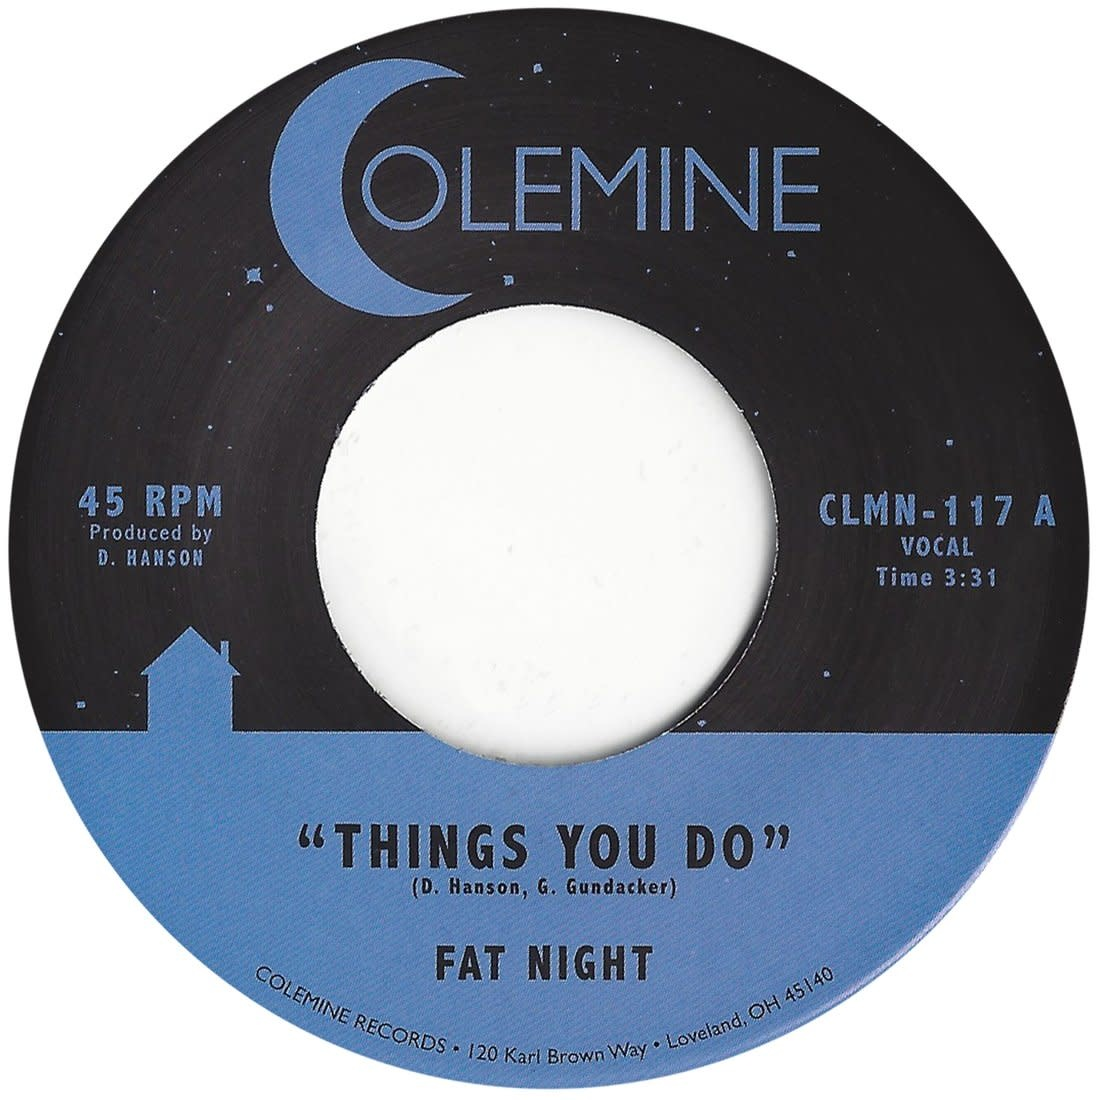 Colemine Records Fat Night - Things You Do / Things You Do (instrumental)